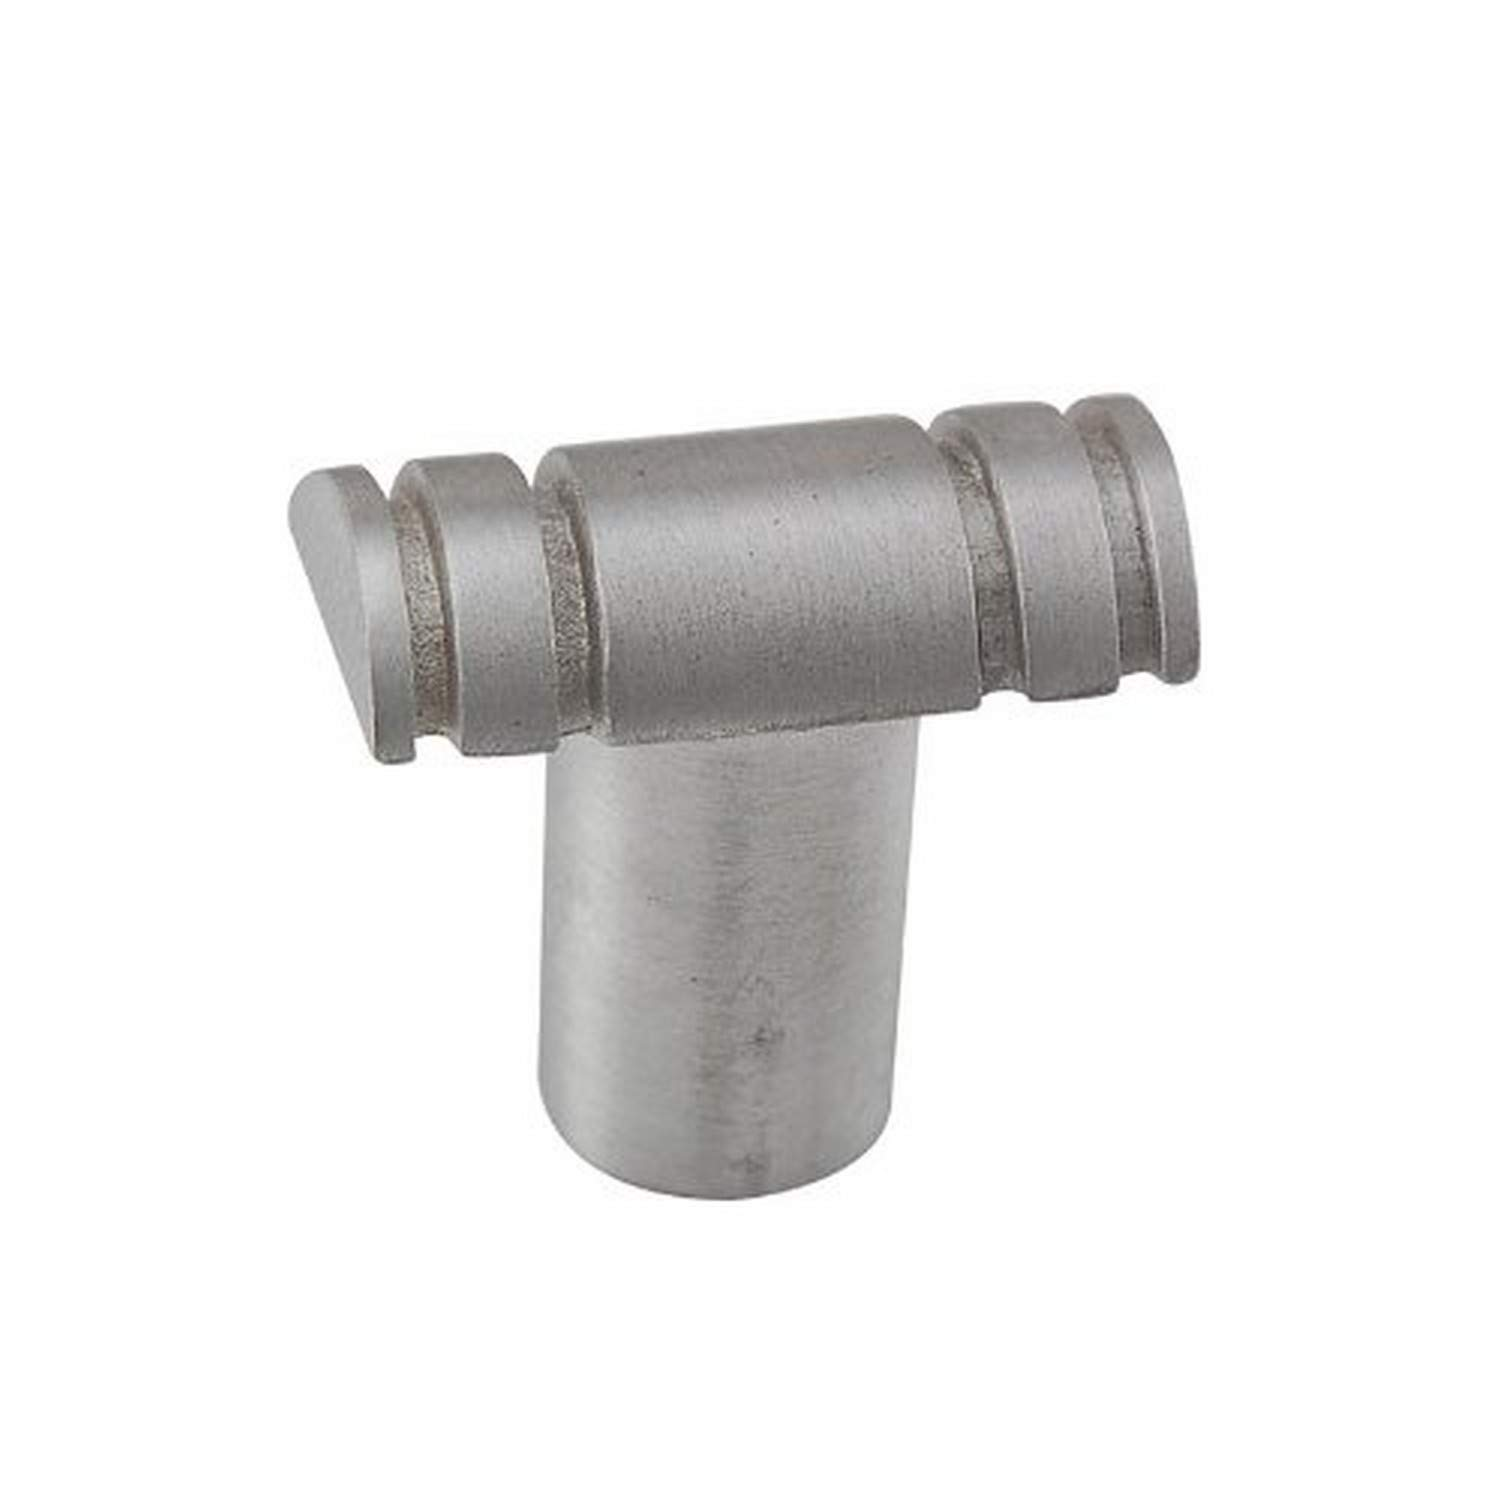 Satin Nickel Vicenza Designs K1331 Archimedes Knob with Lines Small